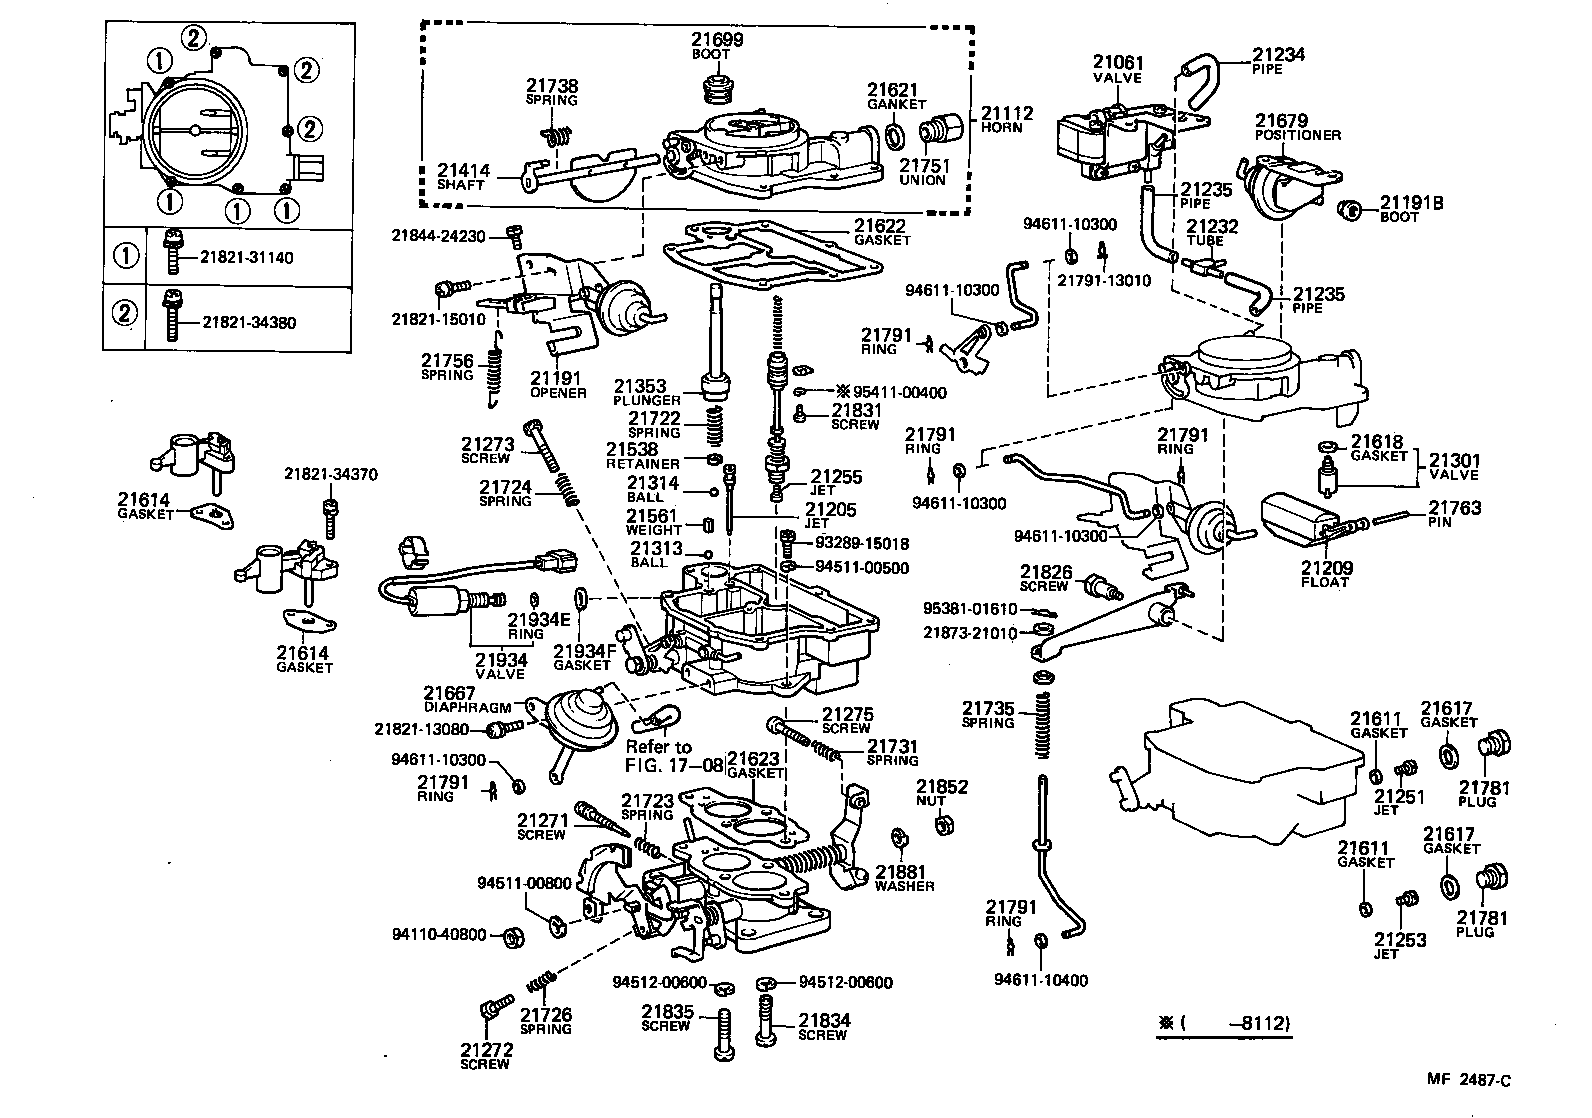 2001 Mazda 626 Turn Signal Wiring Diagram 2001 Mazda 626